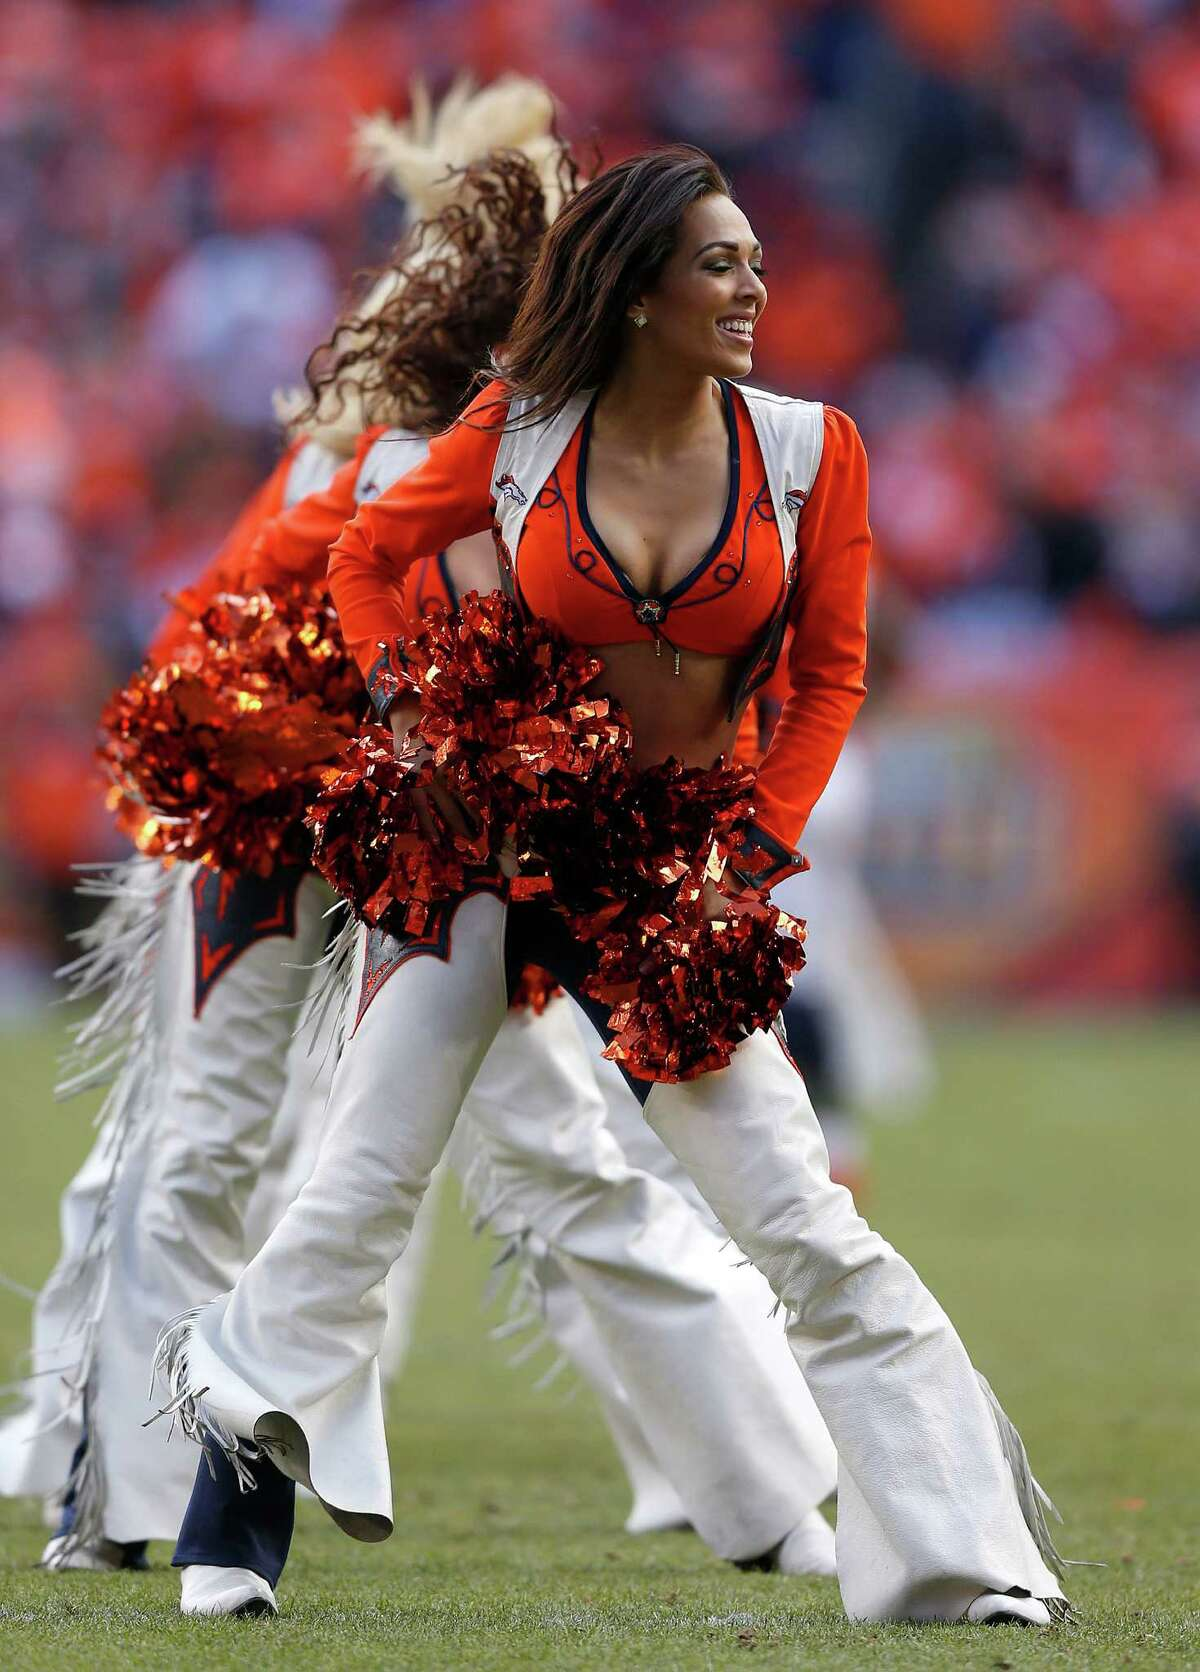 Denver Broncos cheerleaders perform during the first half of the NFL football AFC Championship game between the Denver Broncos and the New England Patriots, Sunday, Jan. 24, 2016, in Denver. (AP Photo/David Zalubowski)